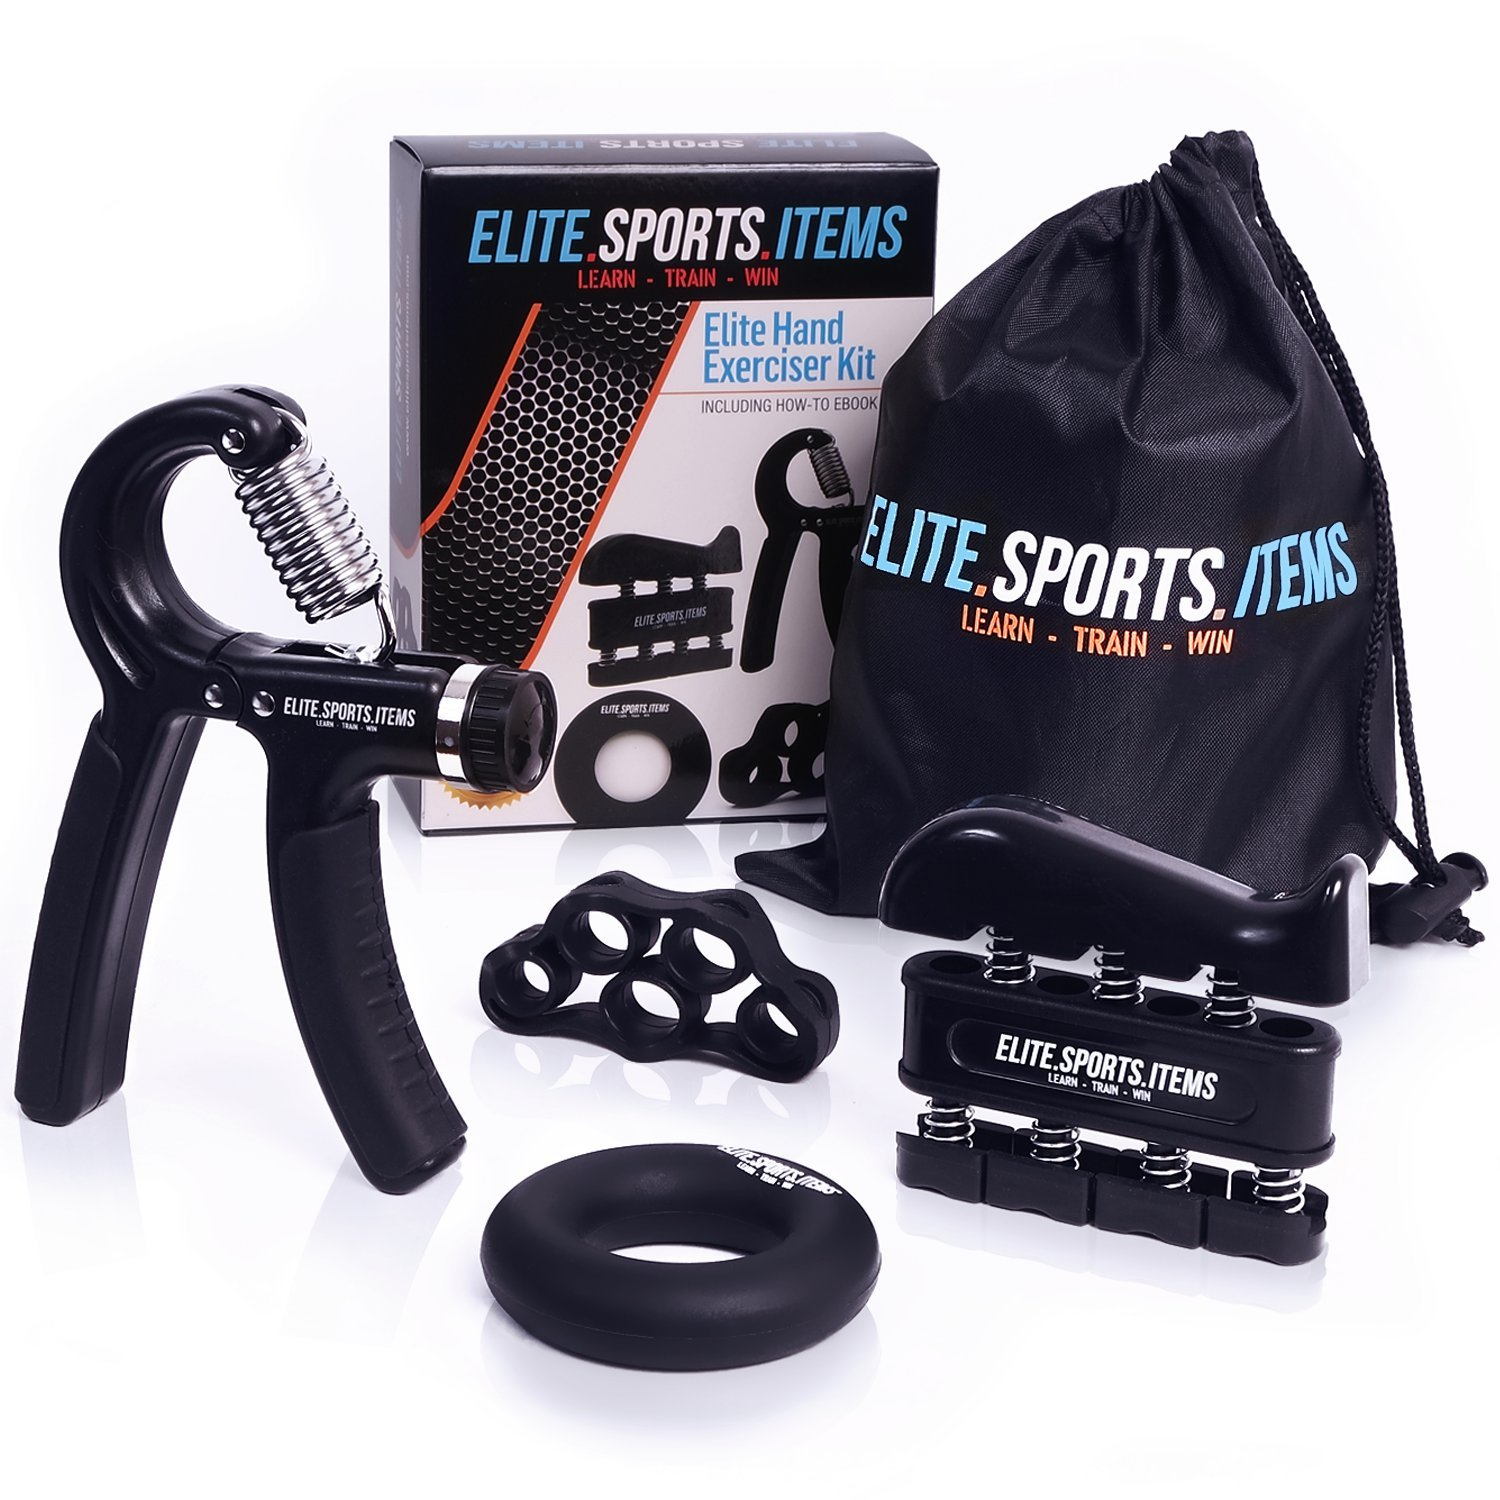 Hand Grip Strengthener Workout (4 Pack) - Adjustable Resistance Hand Strengthener, Finger Exerciser, Finger Stretcher, Grip Ring + Carrying Bag + eBook + 3 Years Warranty - ELITE SPORTS ITEMS by ELITE SPORTS ITEMS